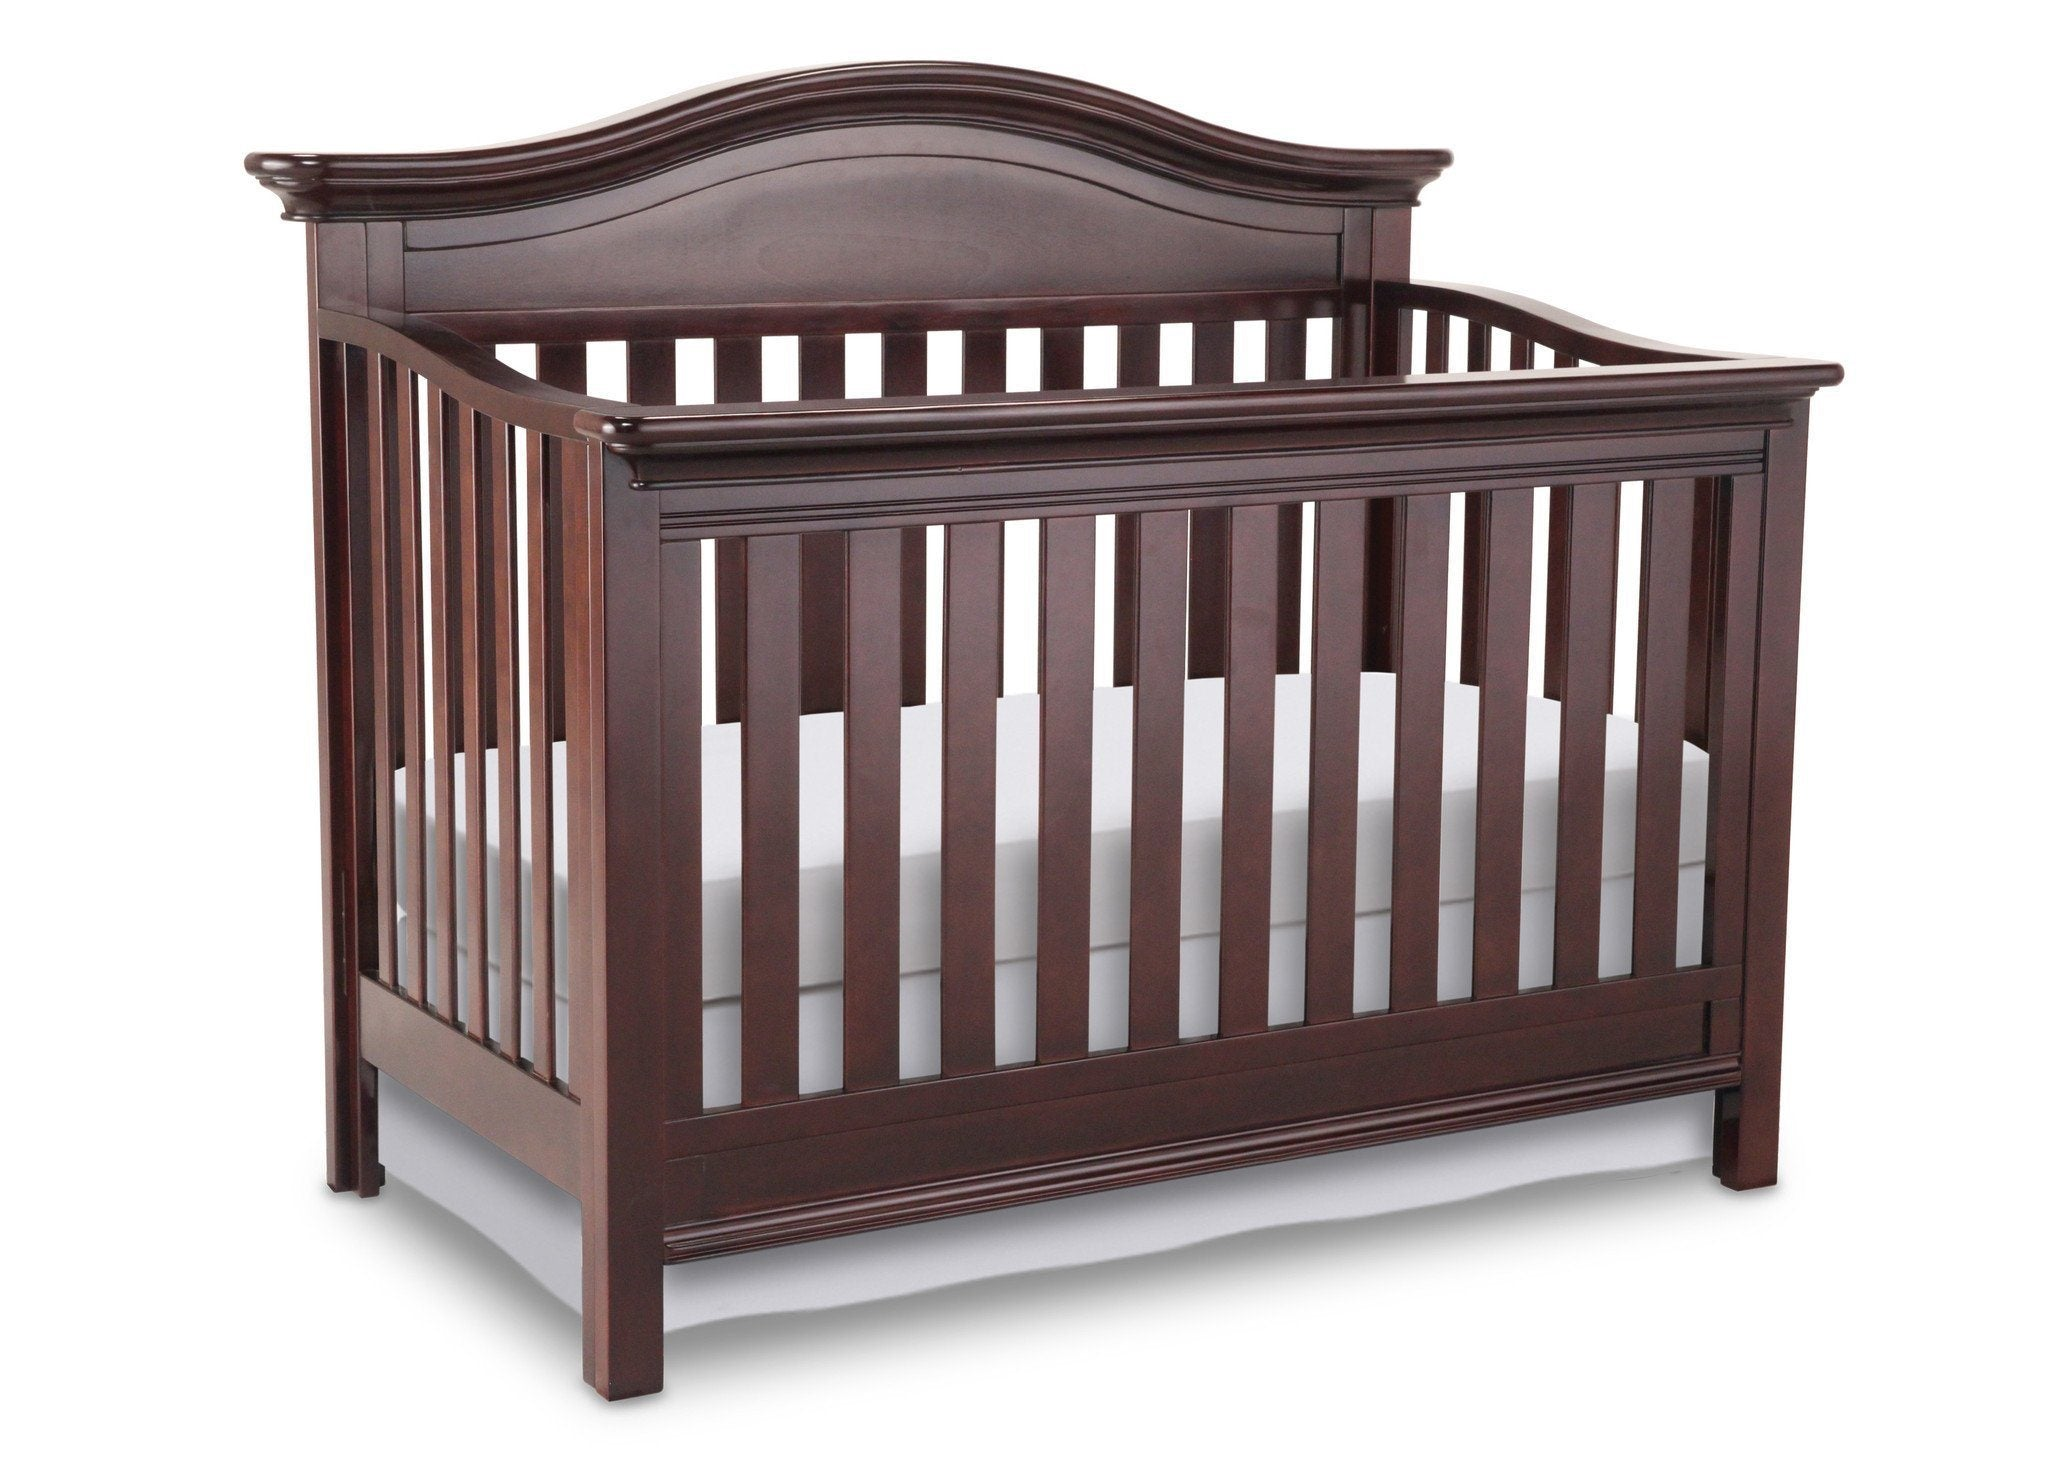 Simmons Kids Molasses (226) Augusta Crib 'N' More (309180), Crib Conversion a2a